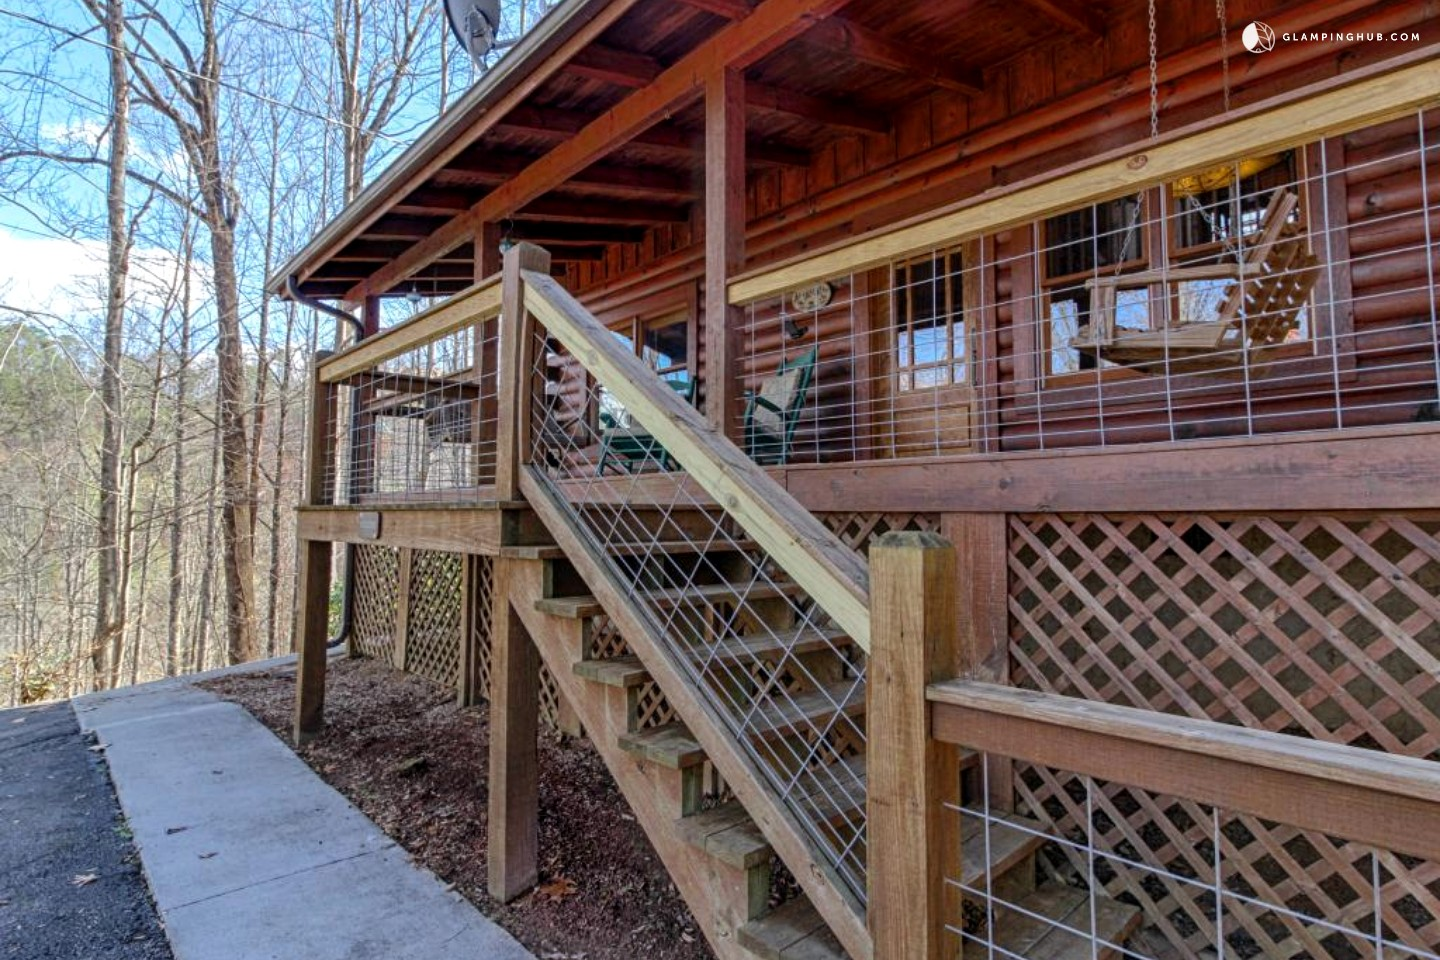 Family friendly cabin near smoky mountains in tennessee for Cabins near gatlinburg tn